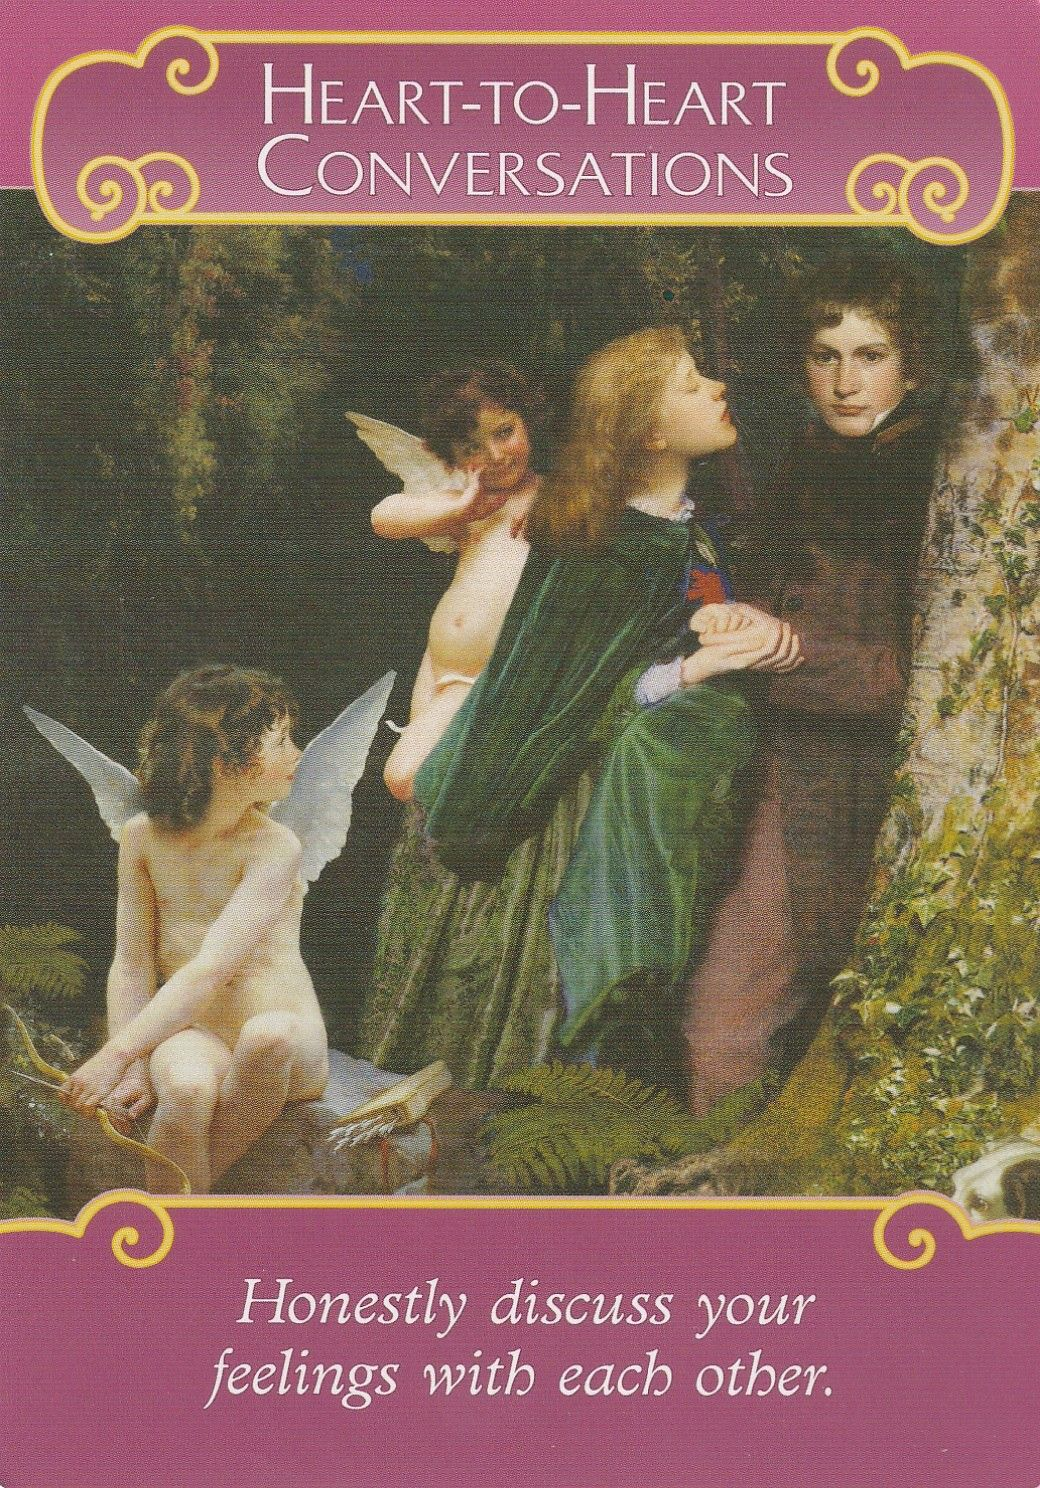 THE ROMANCE ANGELS ORACLE CARDS BY DOREEN VIRTUE | Spirituality